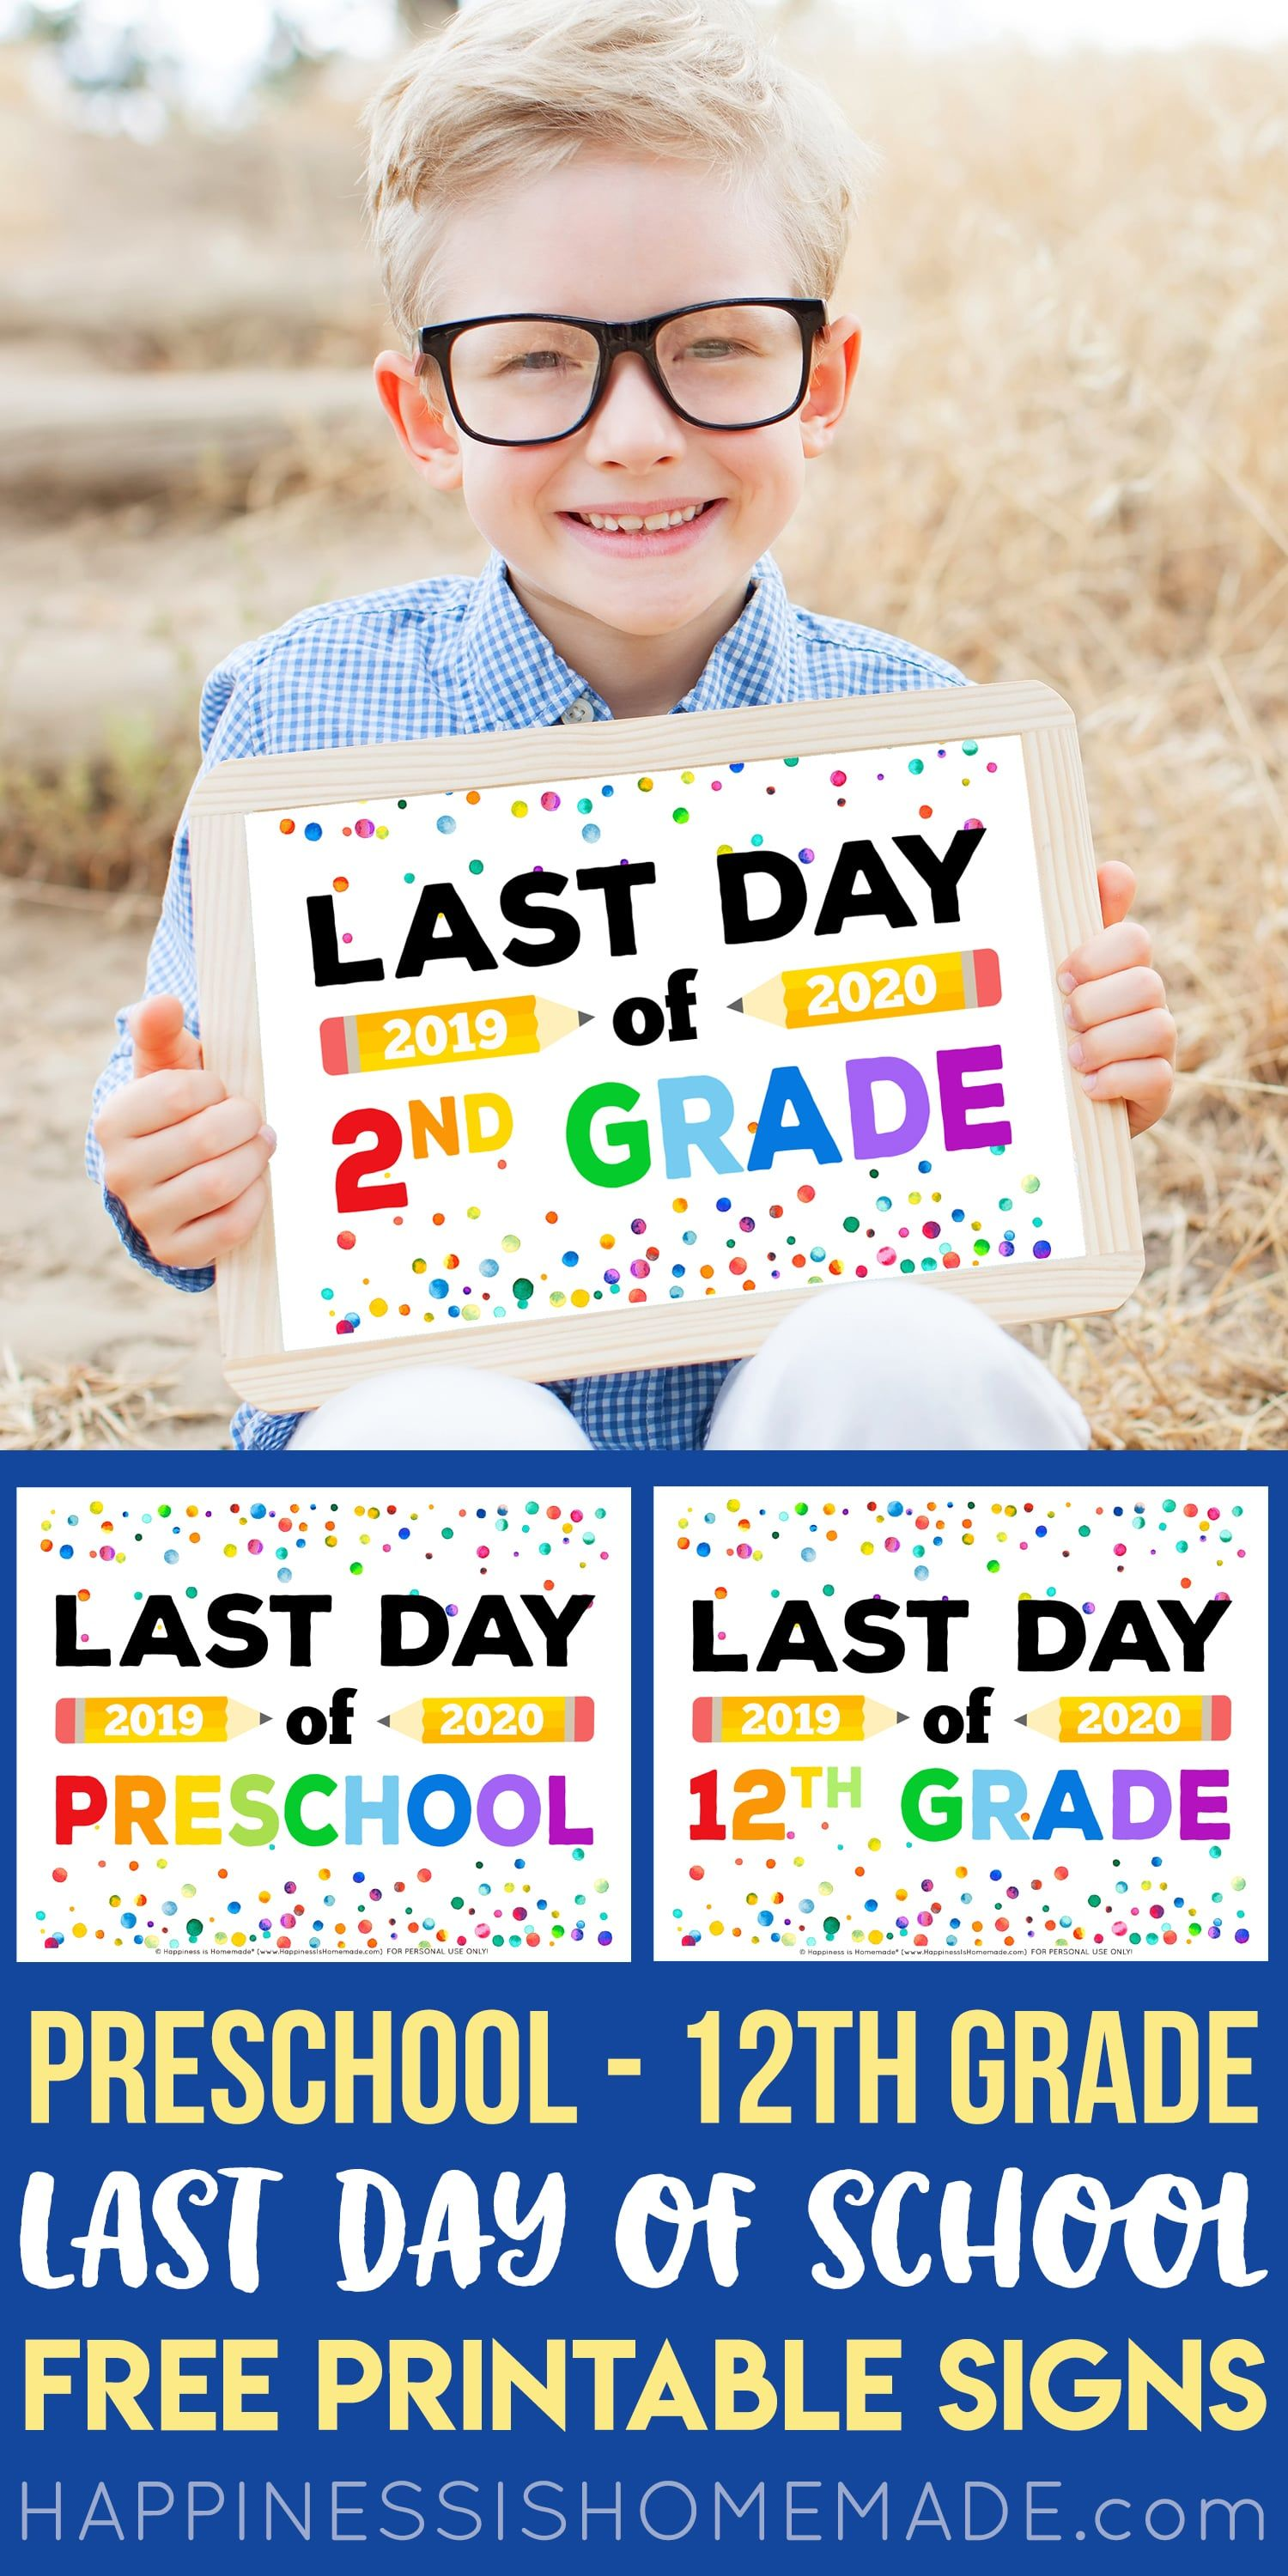 Last Day of School Signs 2020 - Free Printable - Happiness is Homemade